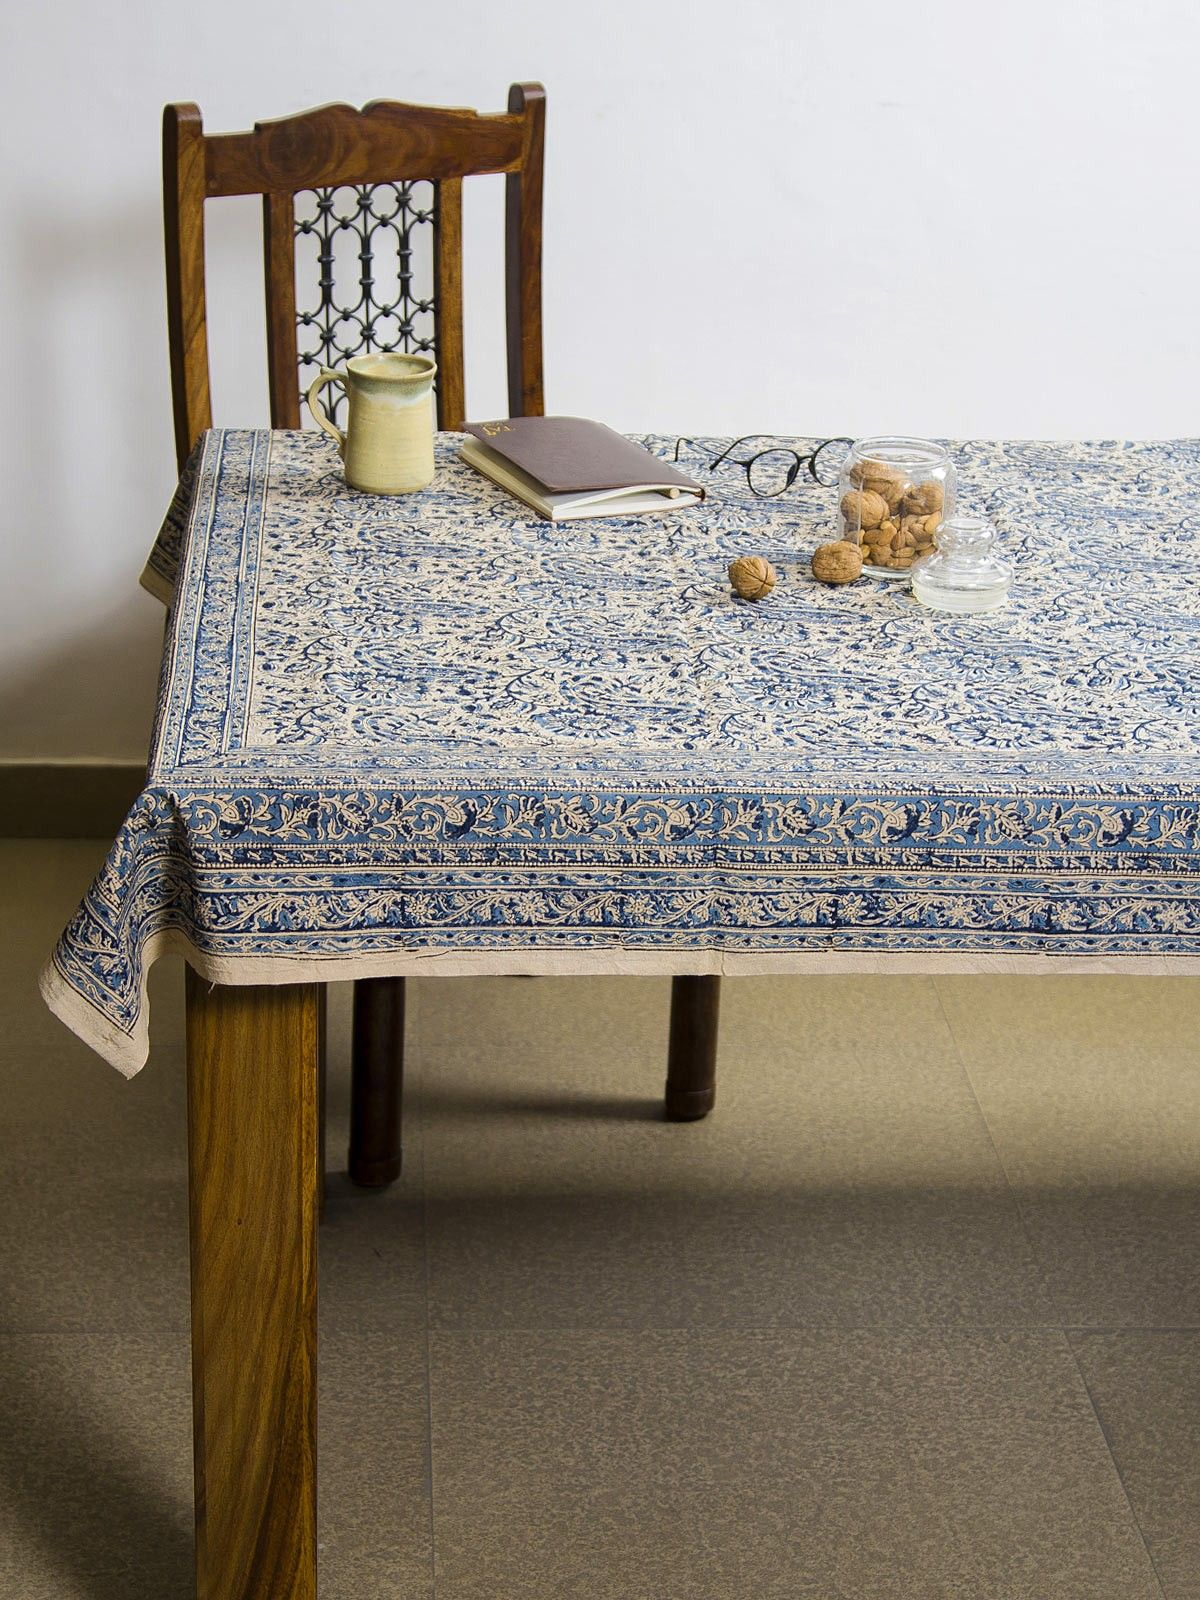 Cerulean Amra Kalamkari 6 seater table cover